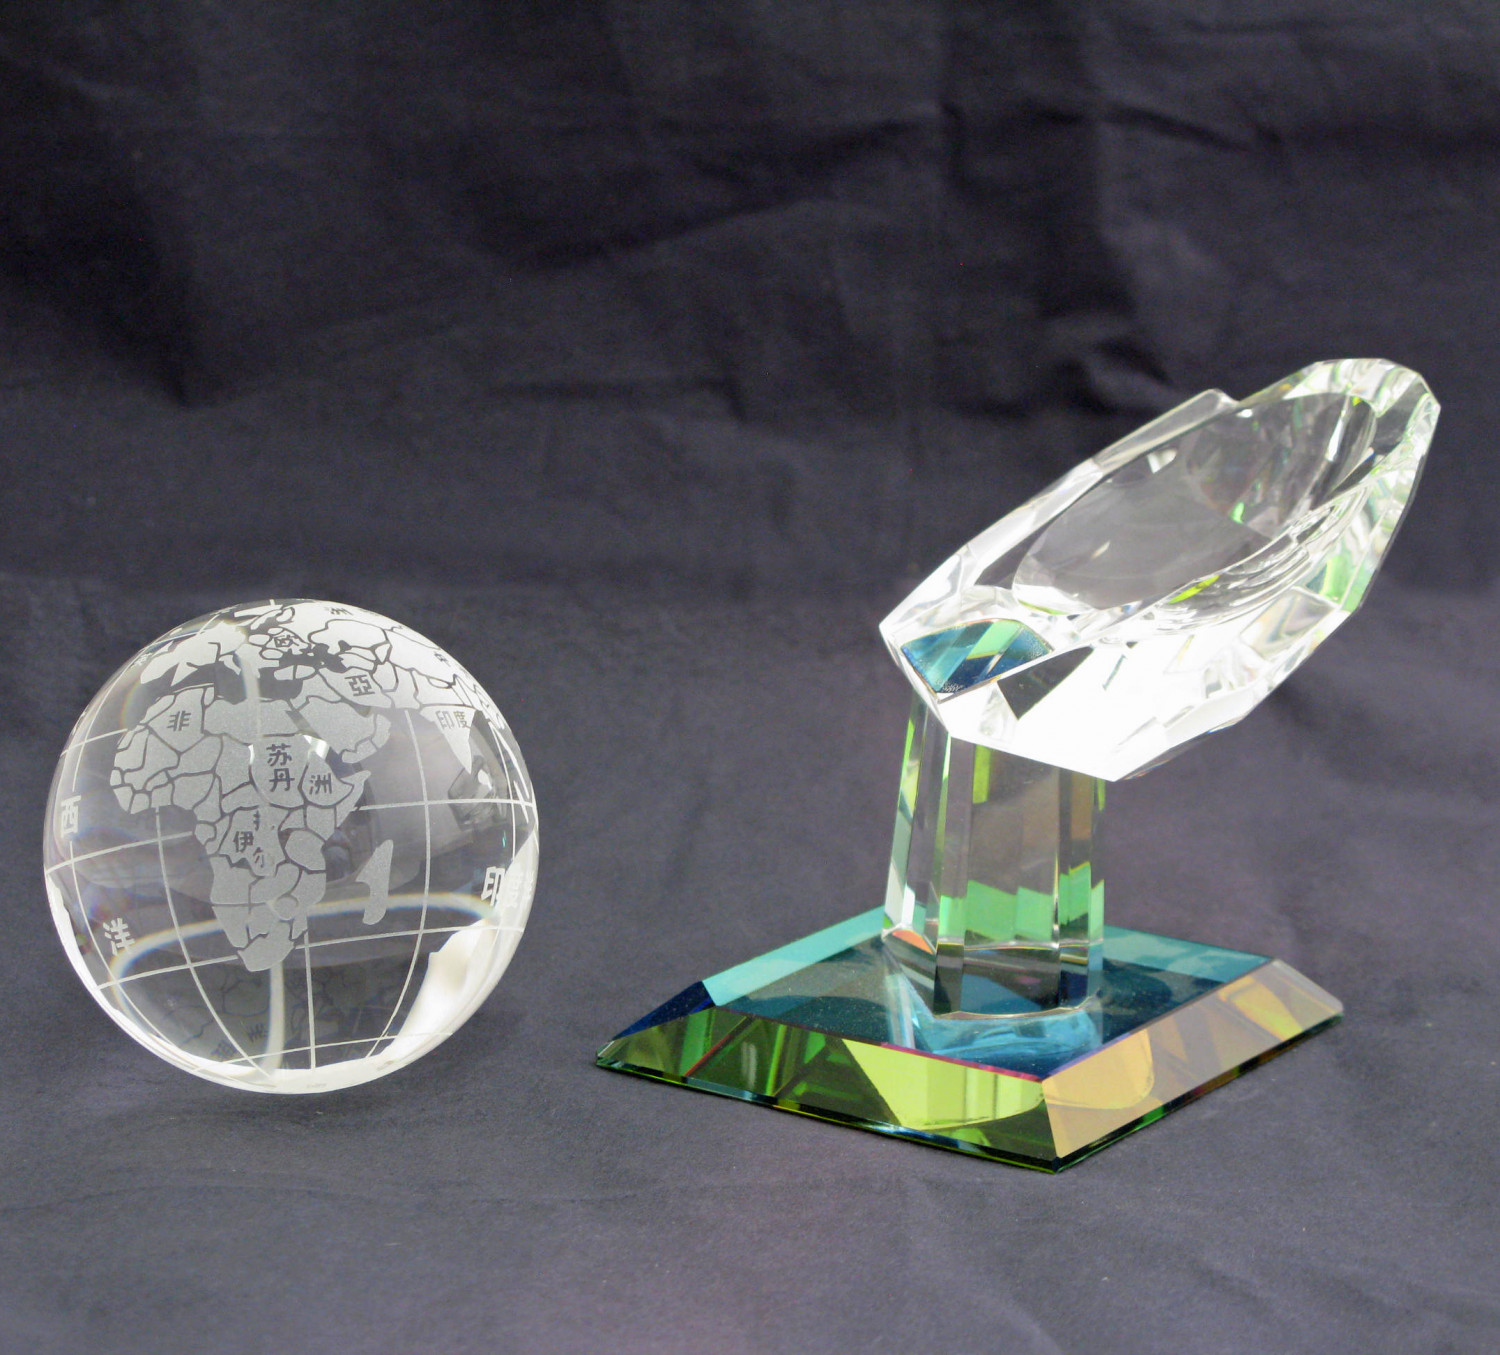 Two Piece Glass Promotional Item Showing World Wide Operations